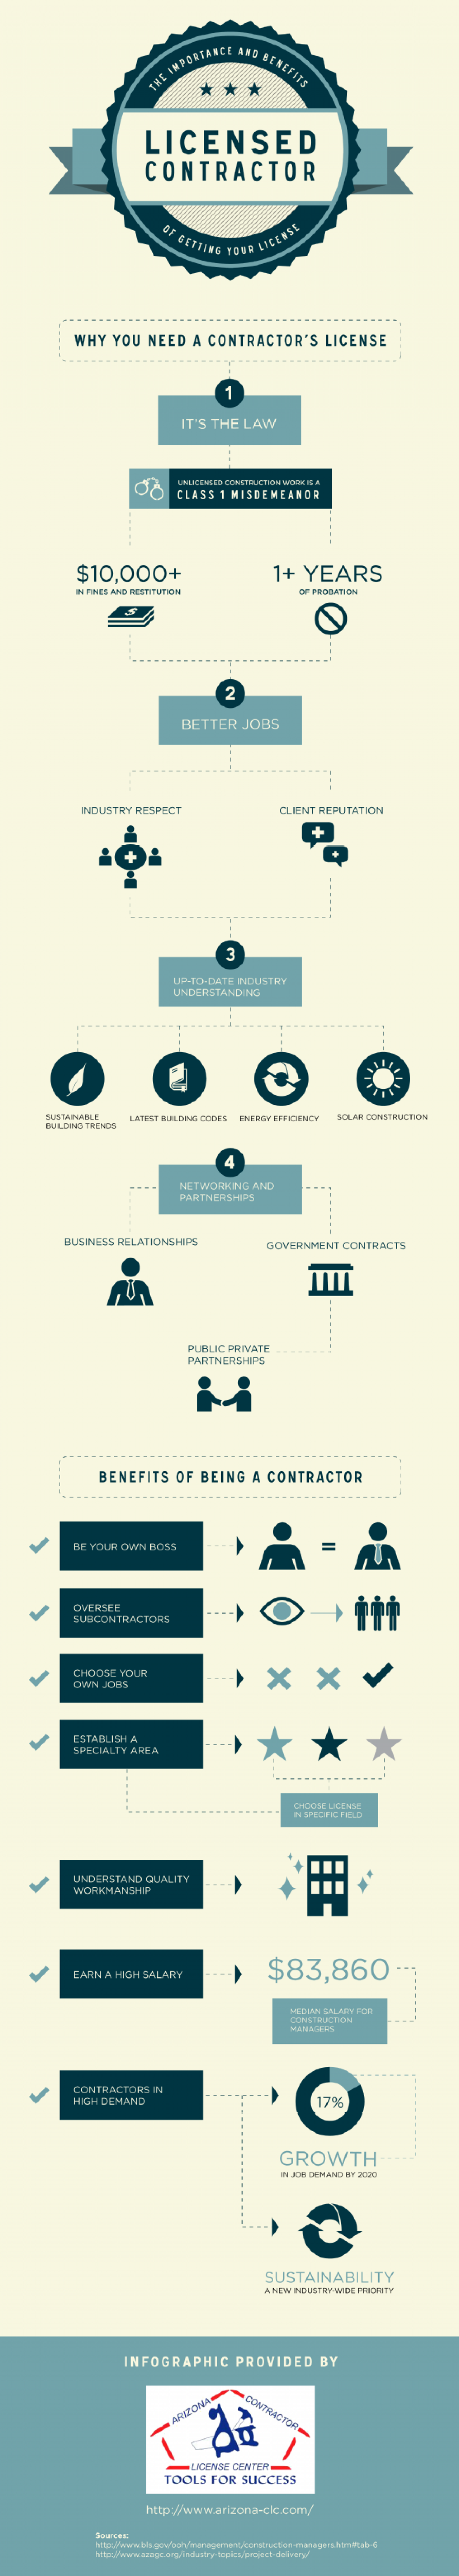 Certified Contractor: The Importance and Benefits of Getting Your License Infographic